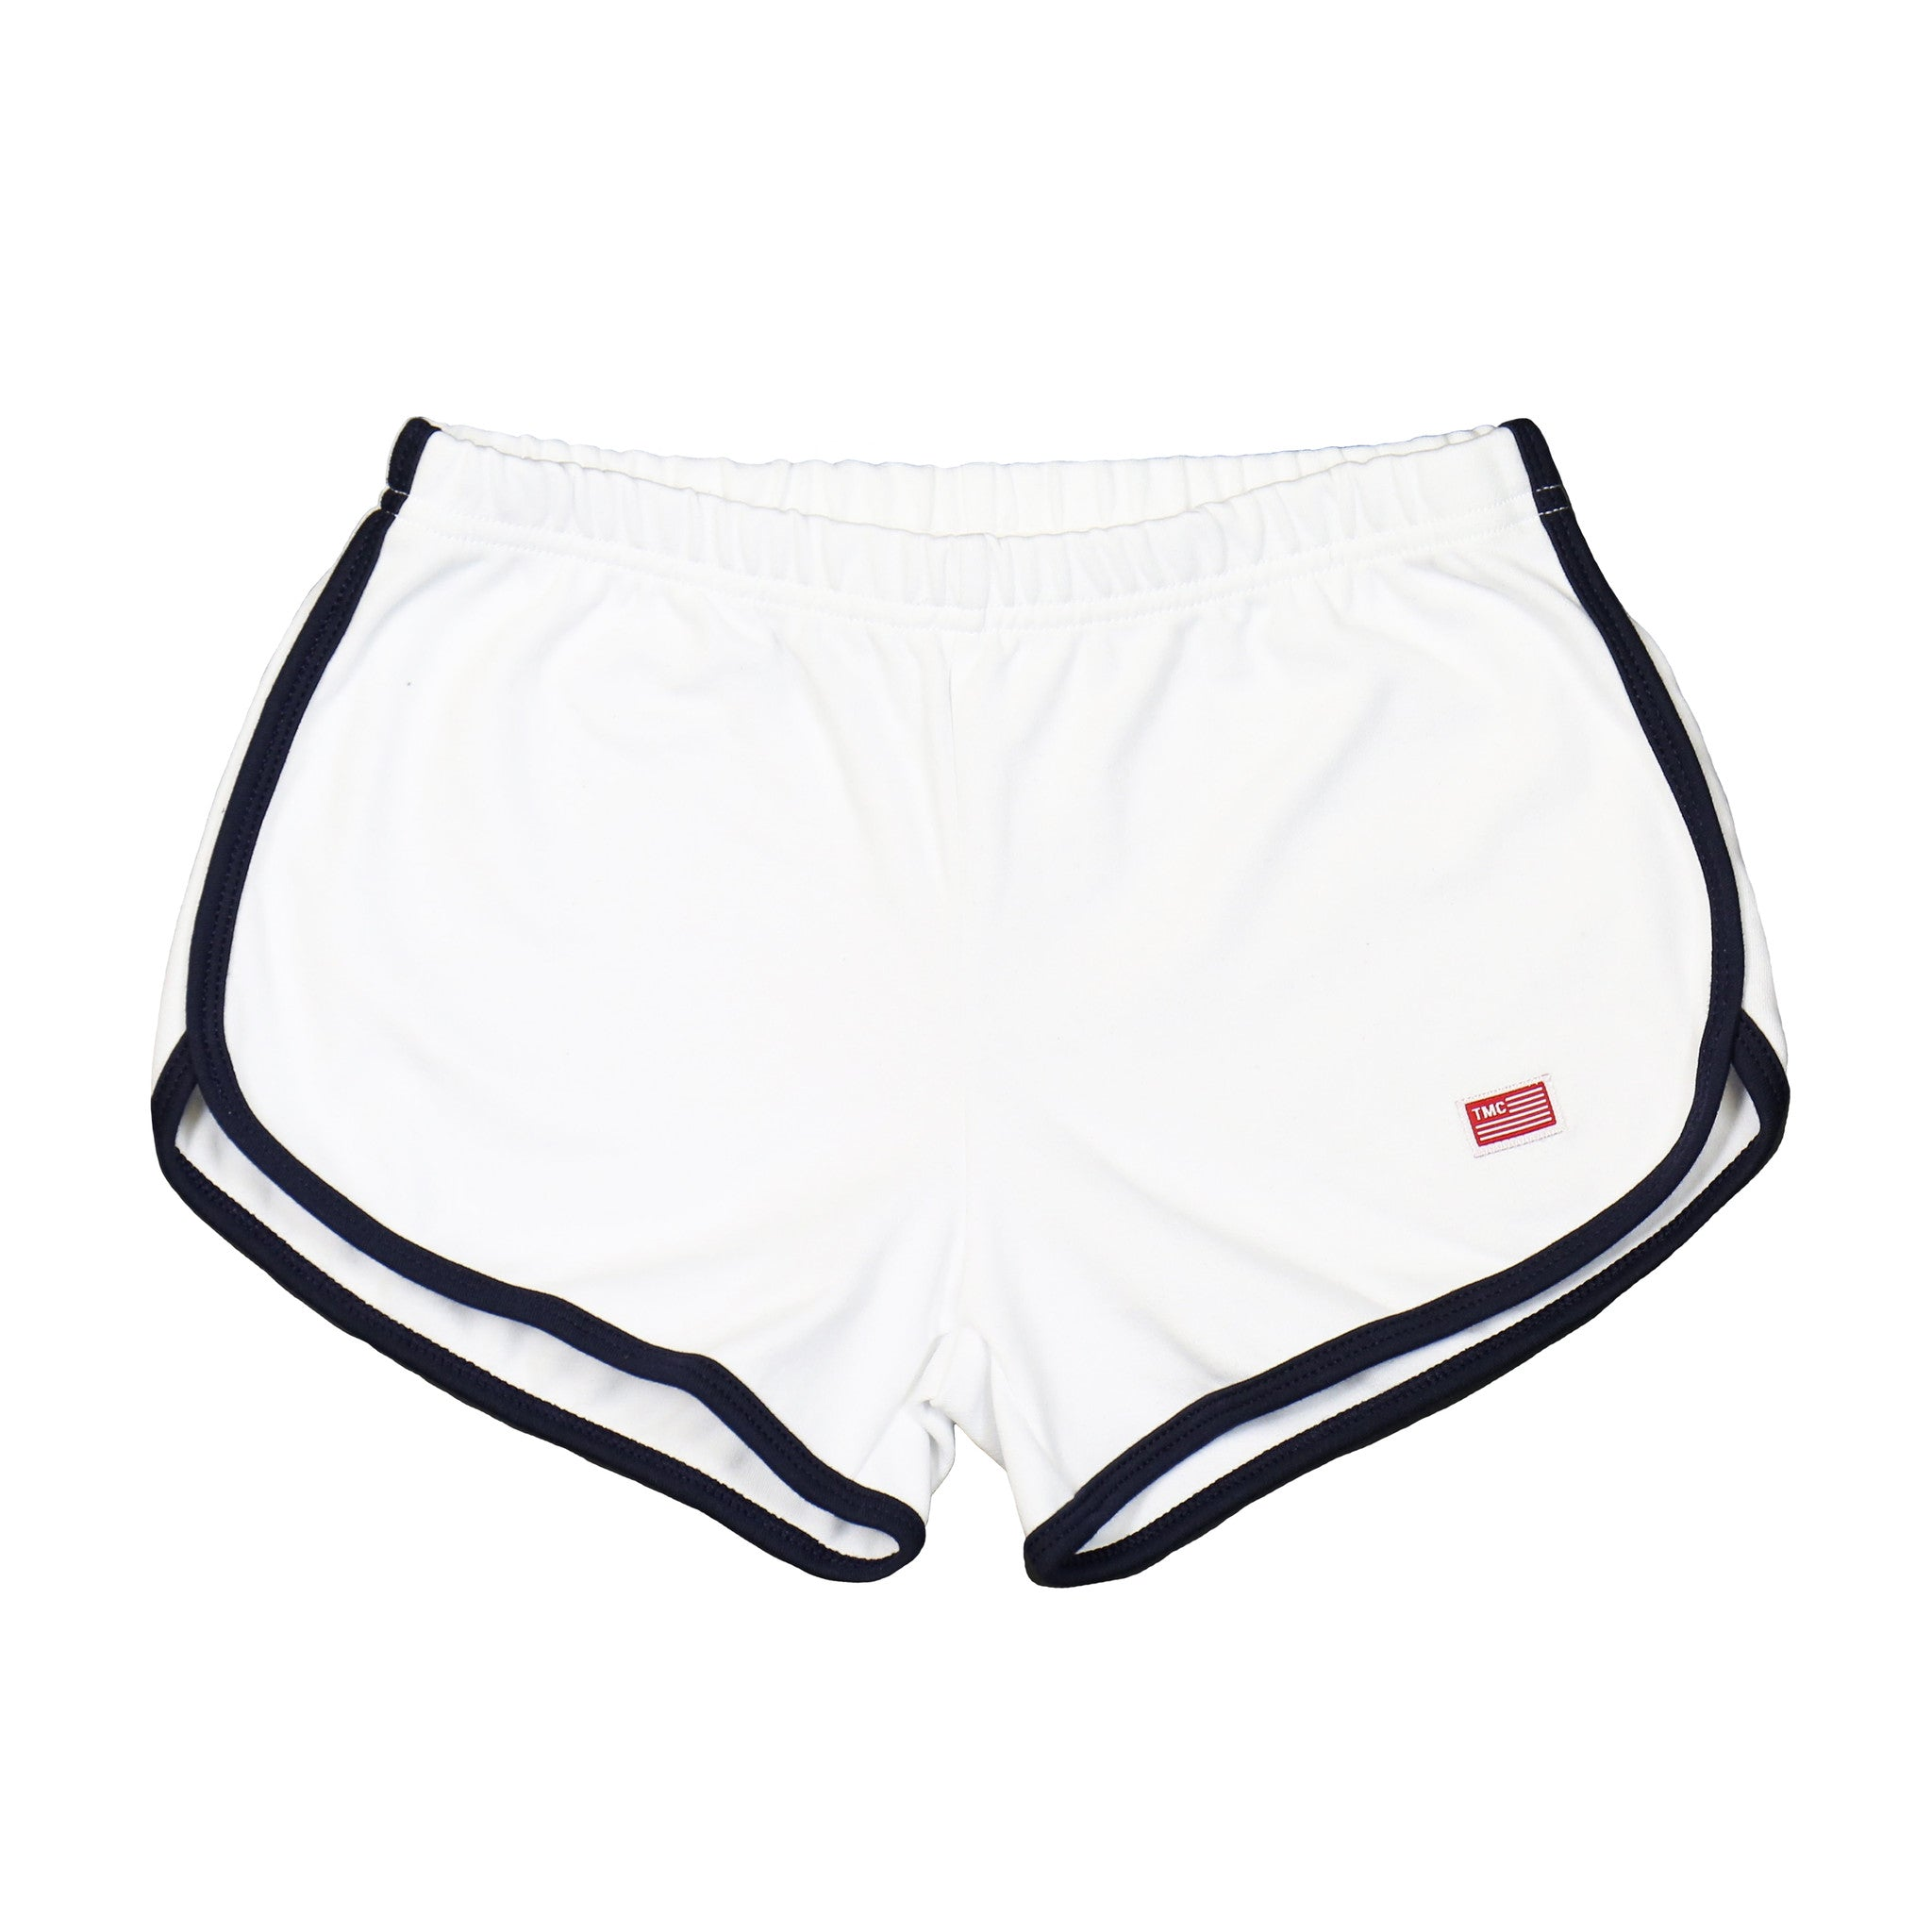 5f403b1592 TMC Shorts - White/Navy [Women] – The Marathon Clothing